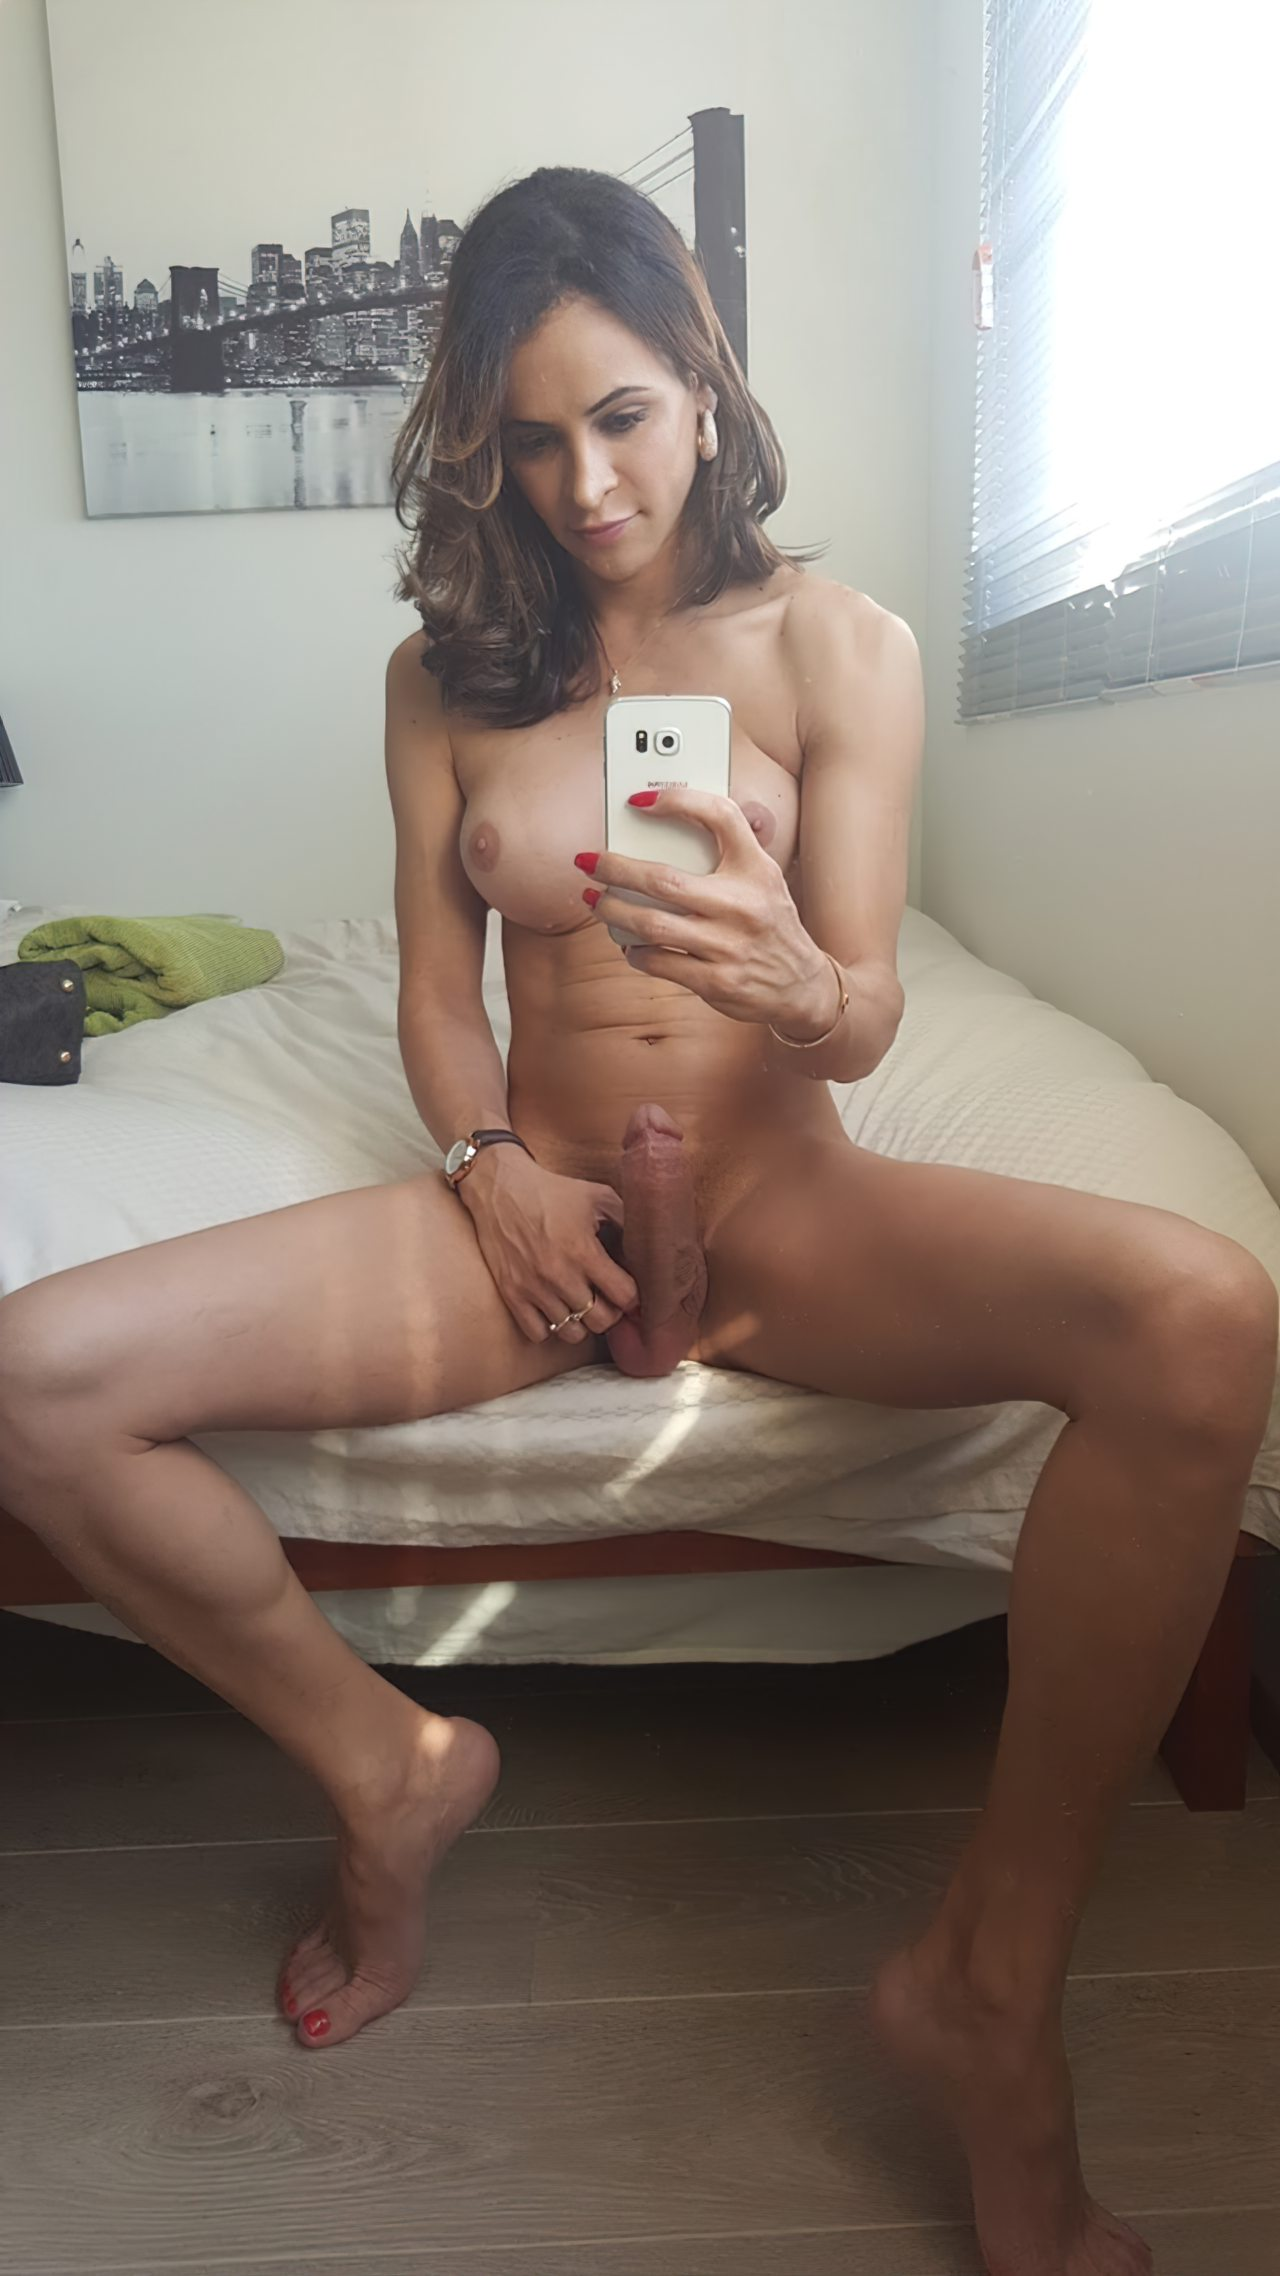 Fotos de Travestis (47)